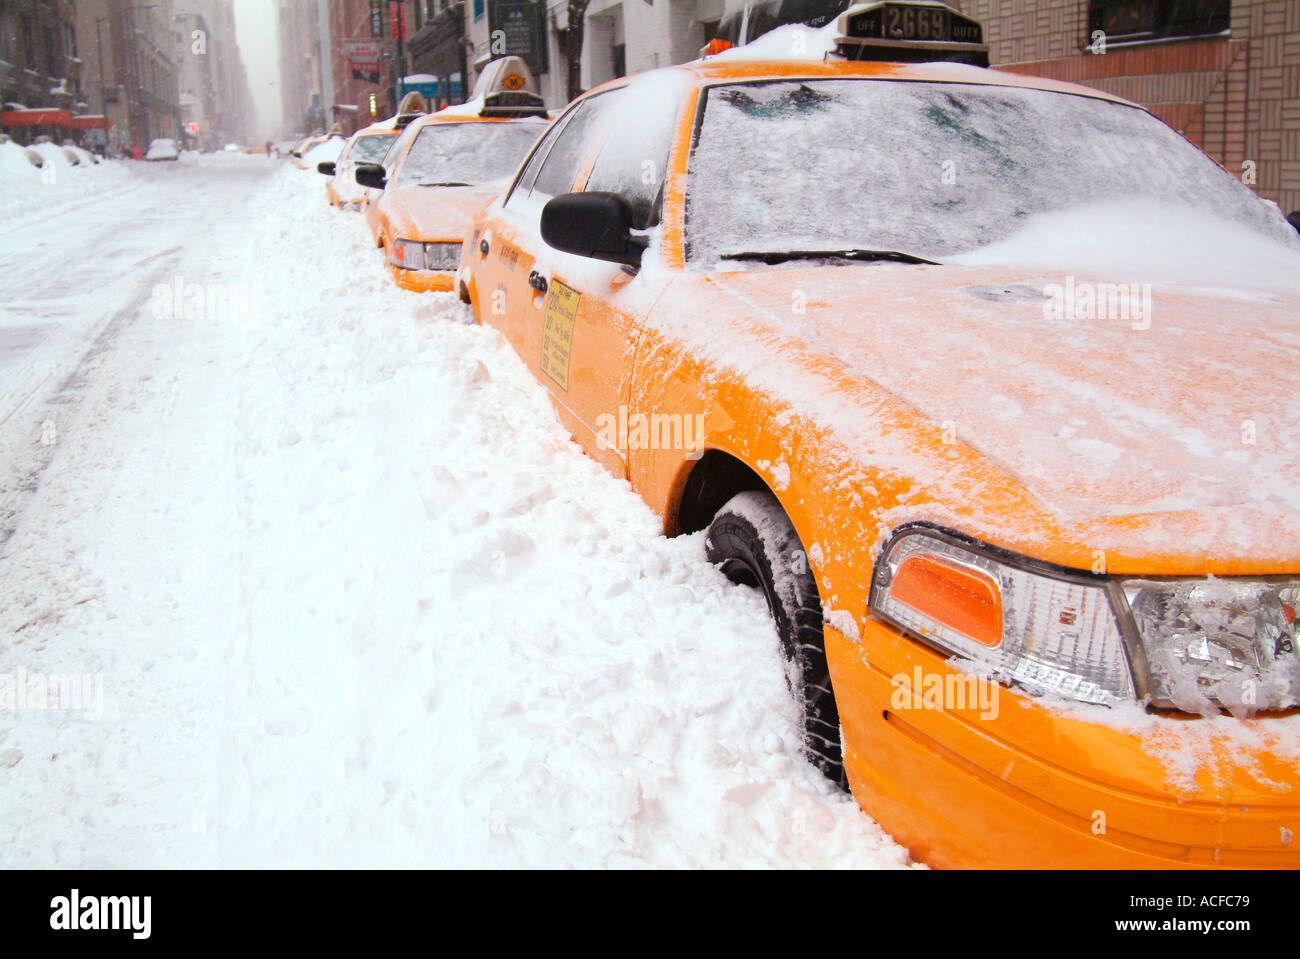 Taxi Cabs Snowed In - Stock Image